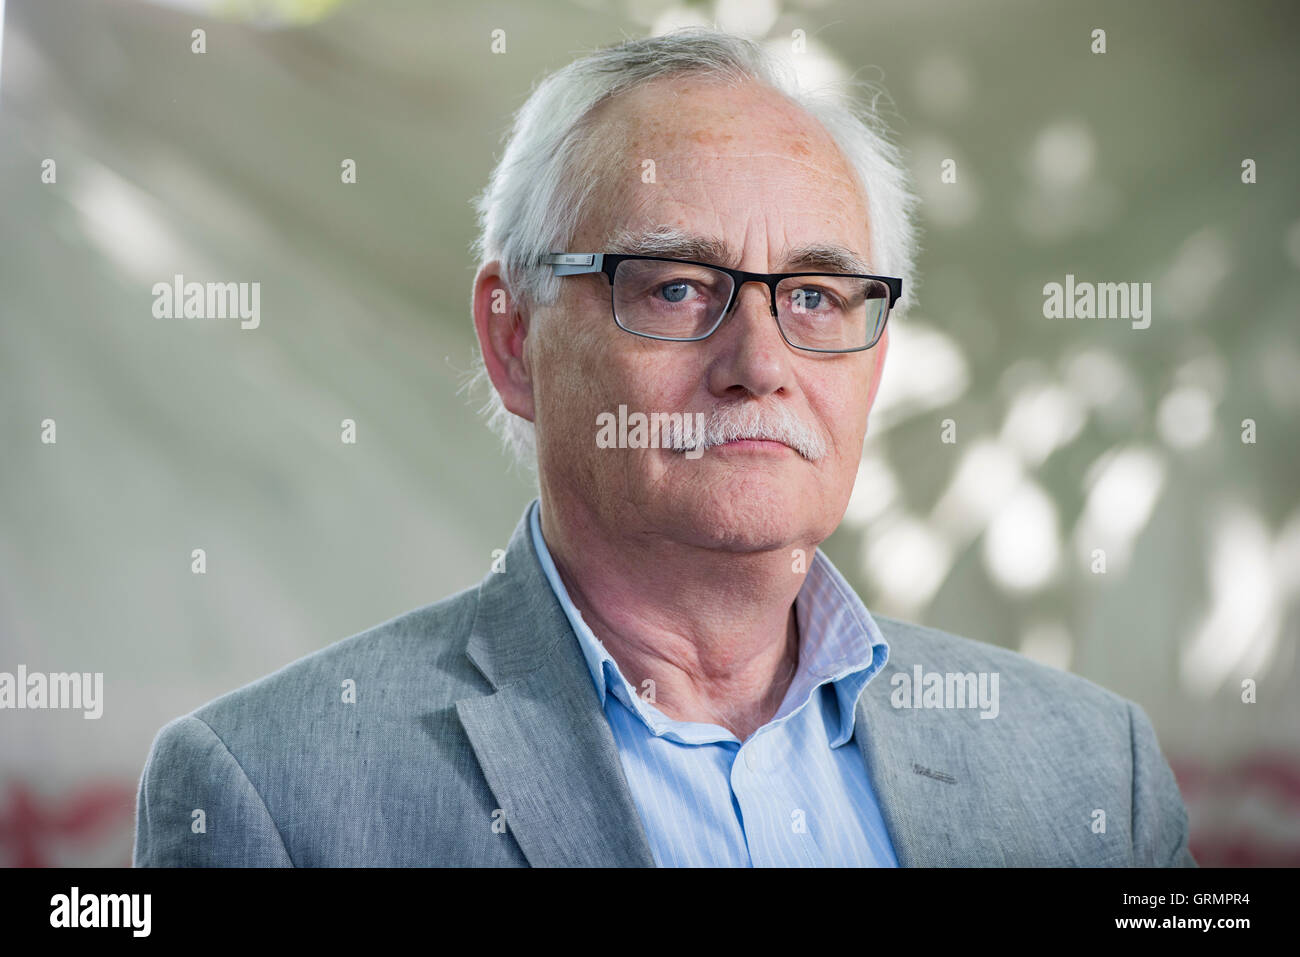 Professor at the University of St. Andrews, Roger Mason. - Stock Image